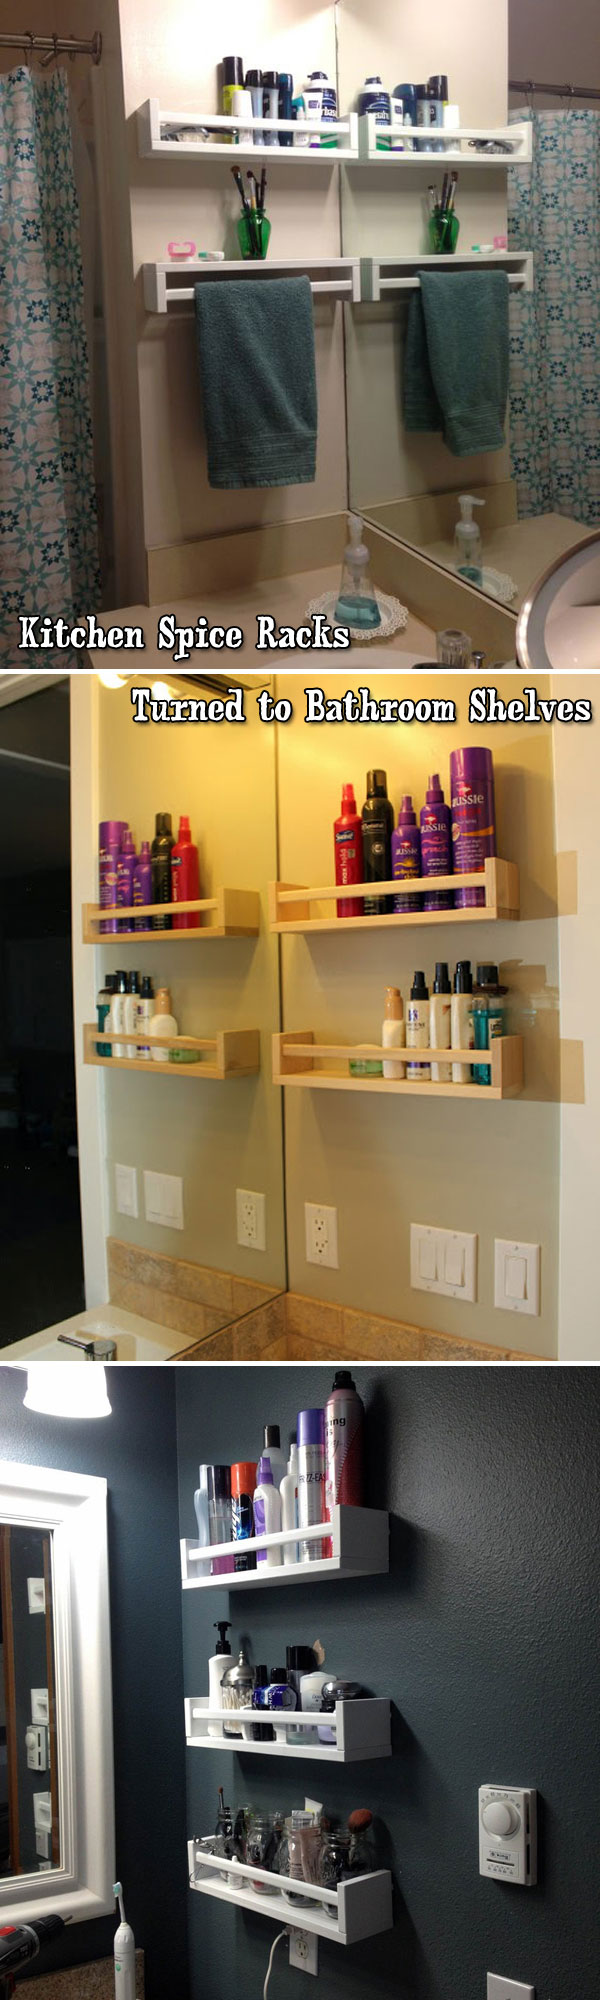 Clever repurposing for spice racks is to mount them on the bathroom wall to keep stuff off the counters